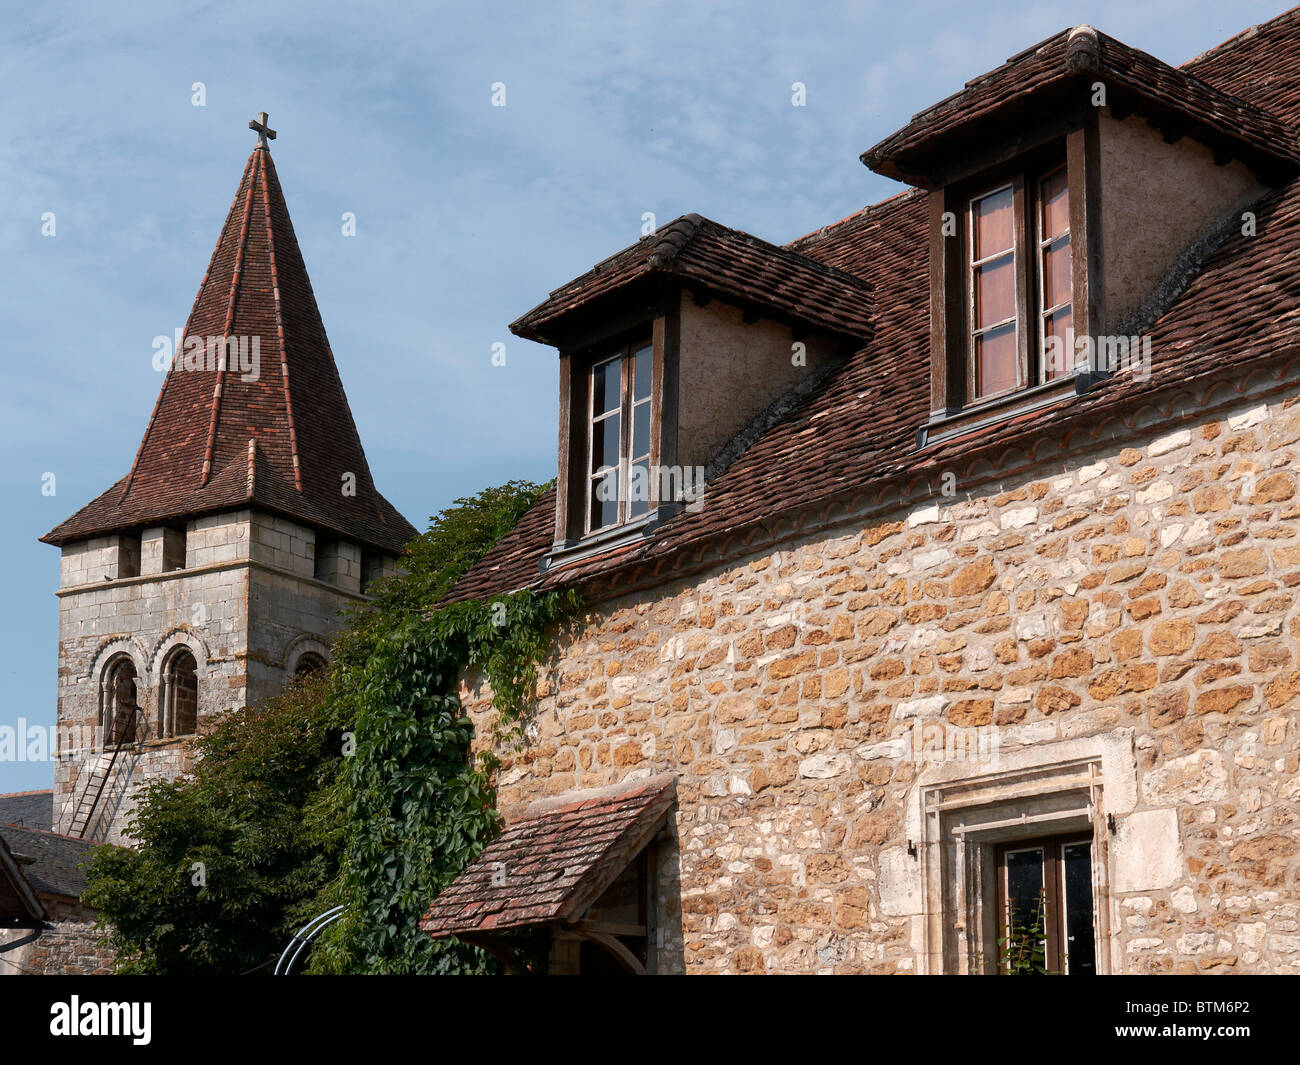 Carennac village in Lot, France - Stock Image